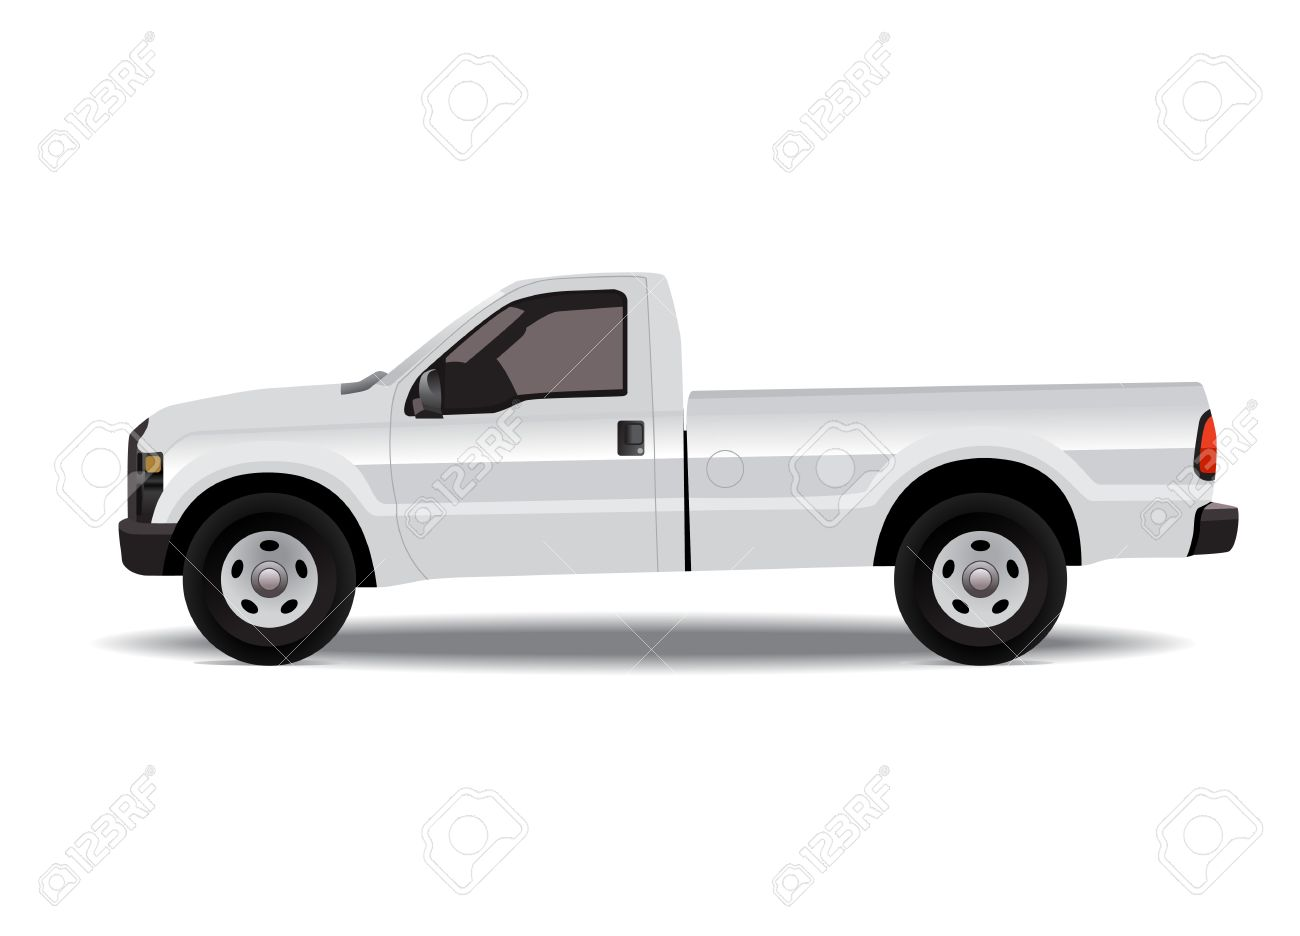 White Pick Up Truck Isolated On White Background